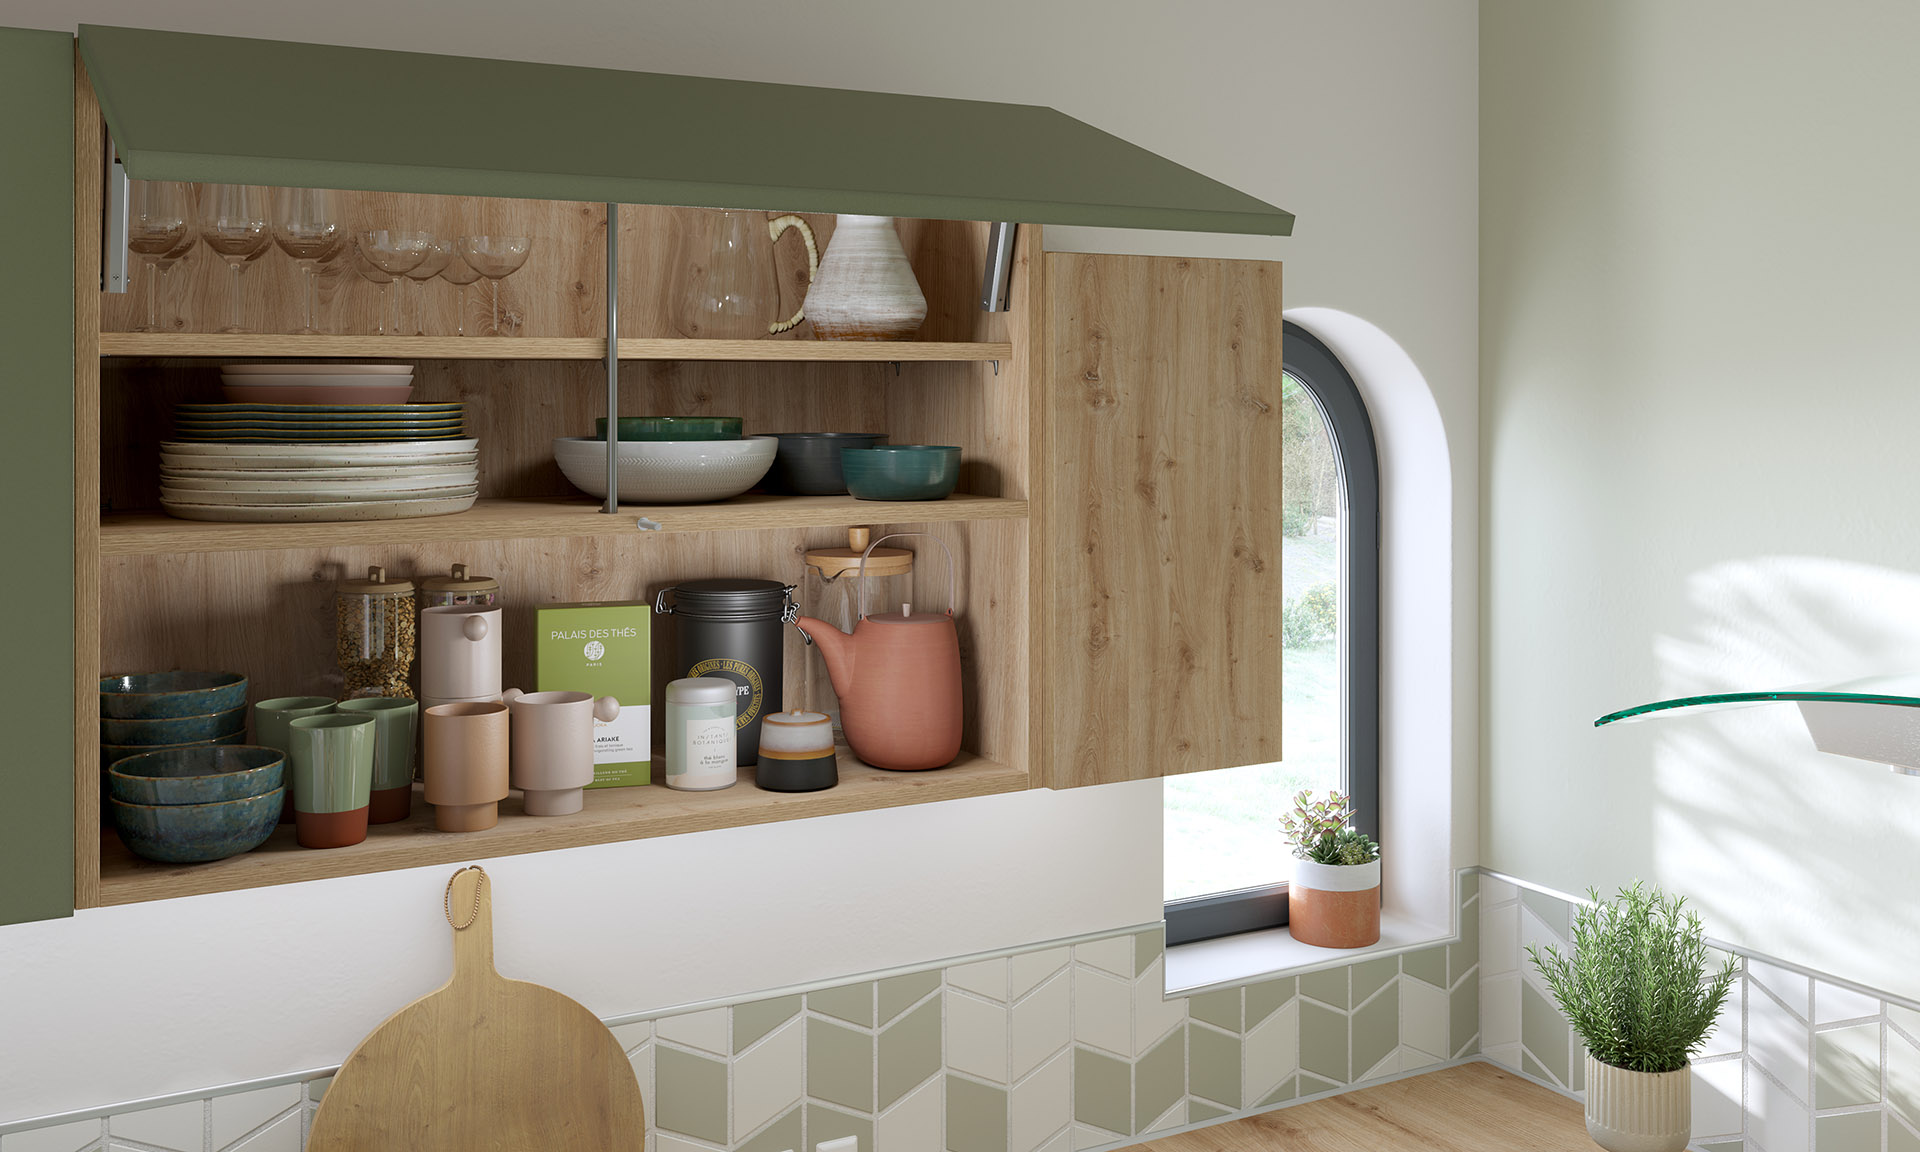 3D image of a cupboard and its dishes in a green and wood kitchen